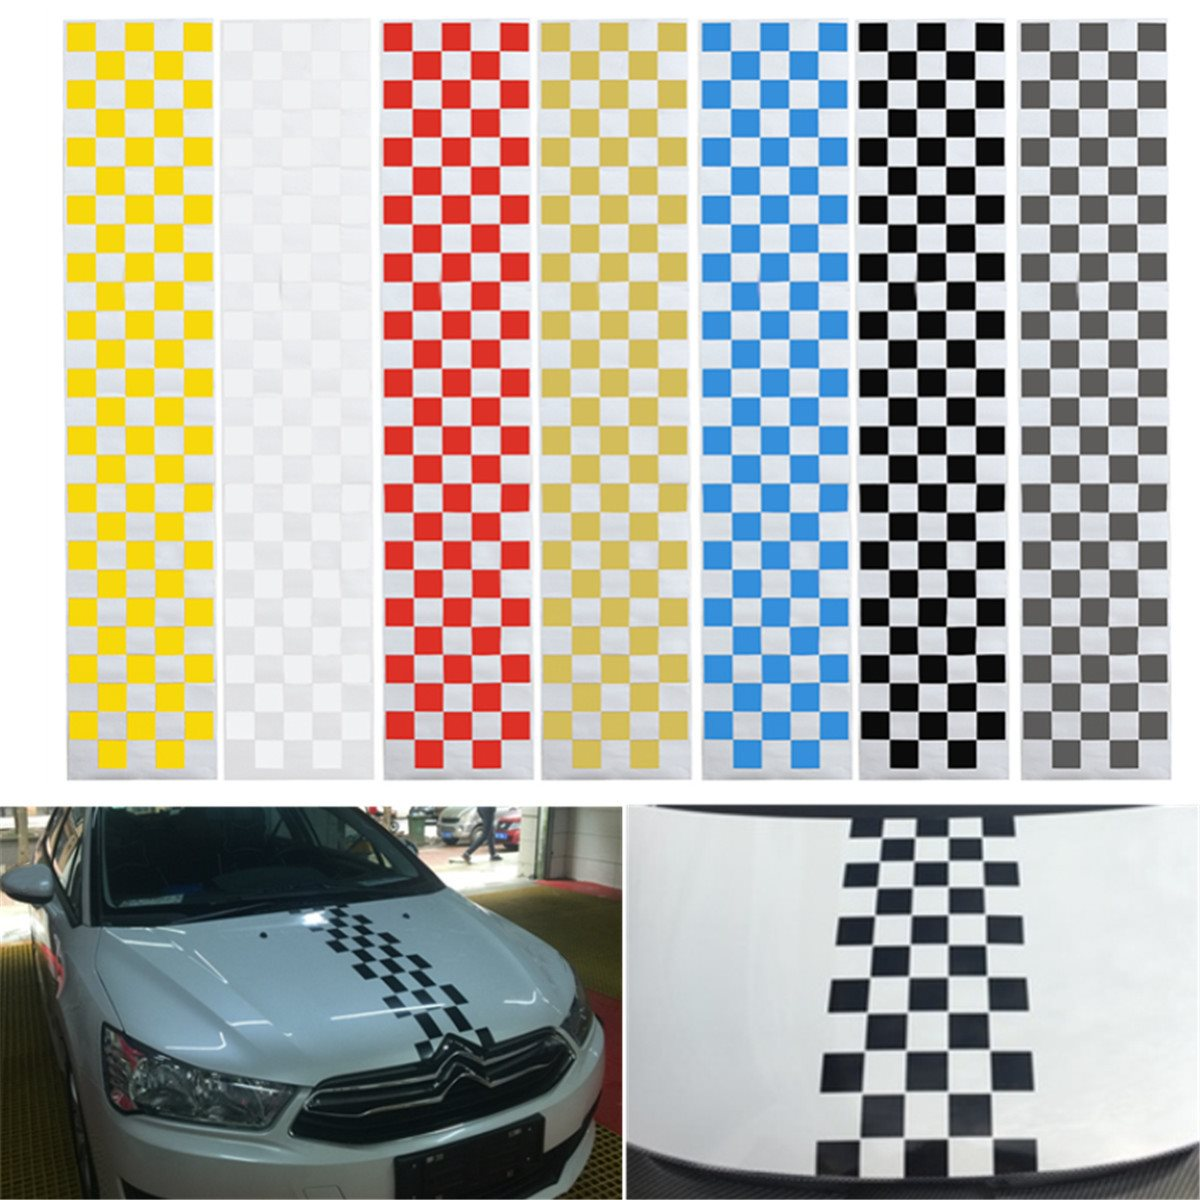 Car Auto SUV Hood Scratched Check Stickers Engine Cover Styling Decal Vinyl DIY Decoration PVC 7Colors ltd111ewax for vgn tz 11 1 wxga hd led slim 100